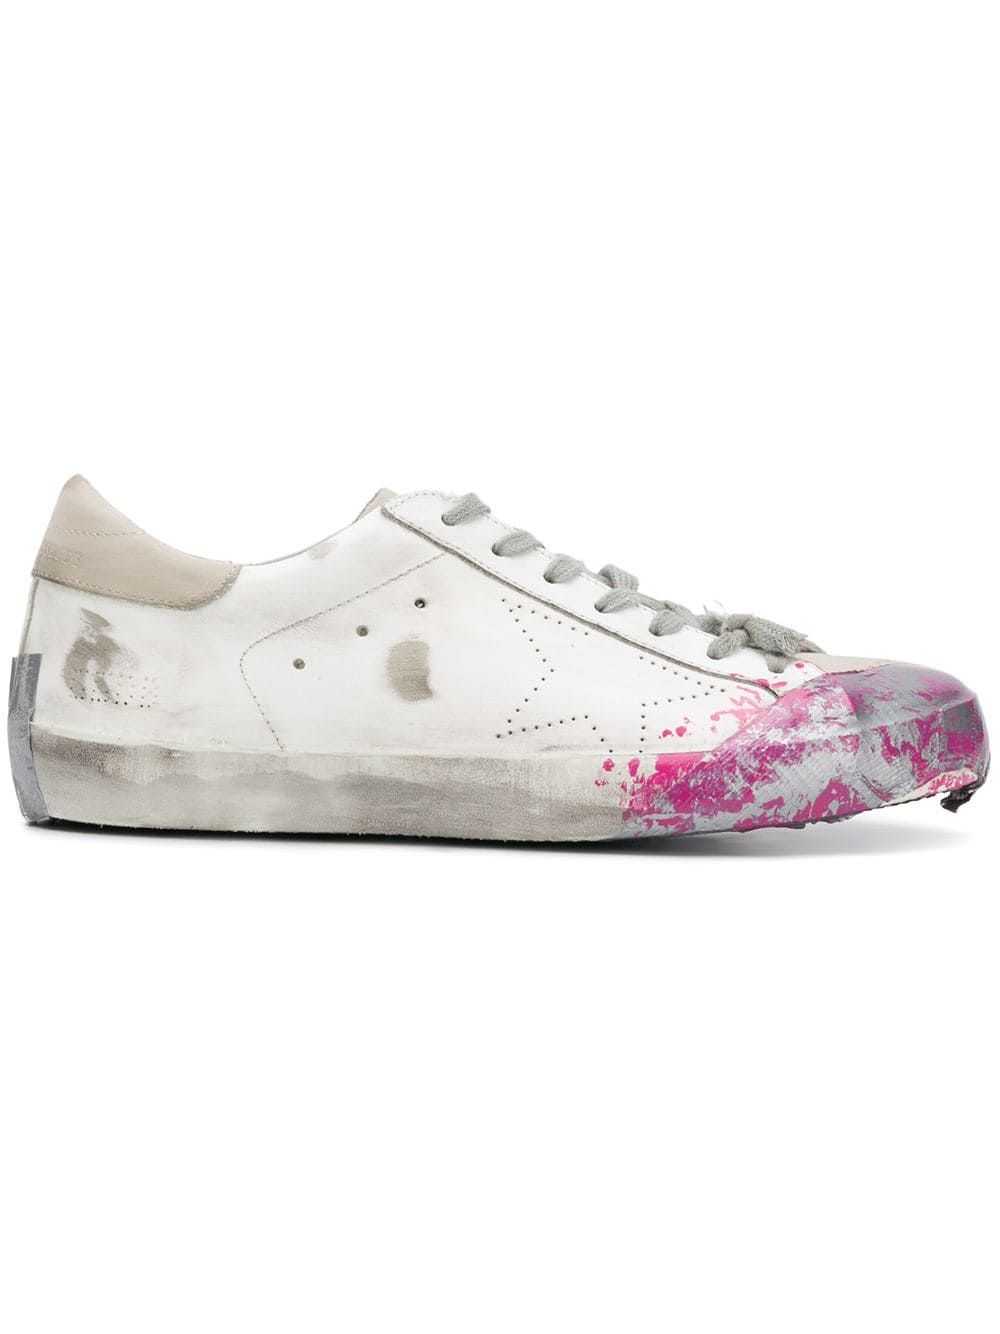 296cd2a31240 GOLDEN GOOSE GOLDEN GOOSE DELUXE BRAND SUPERSTAR SNEAKERS - WHITE.   goldengoose  shoes